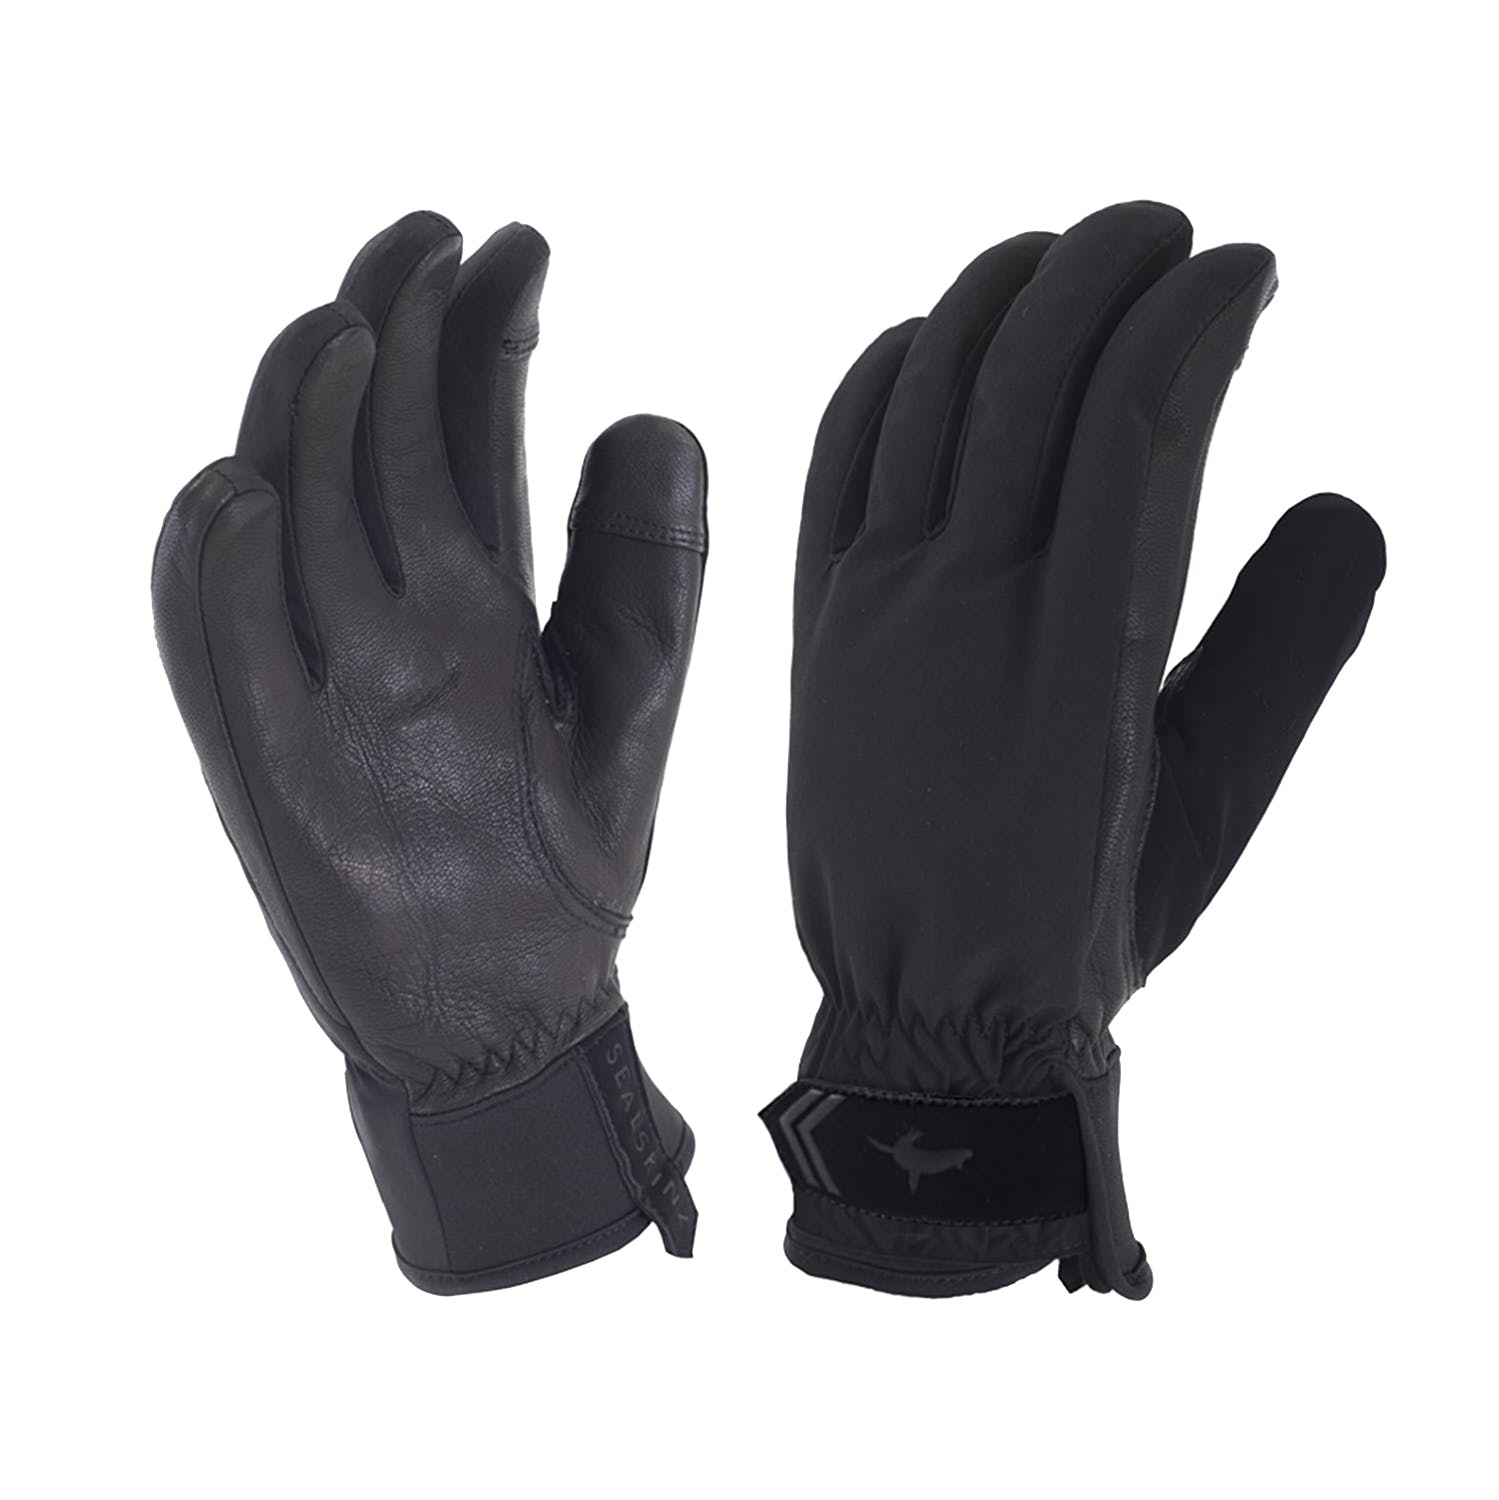 Sealskinz All Season Gloves From Nightgear Uk